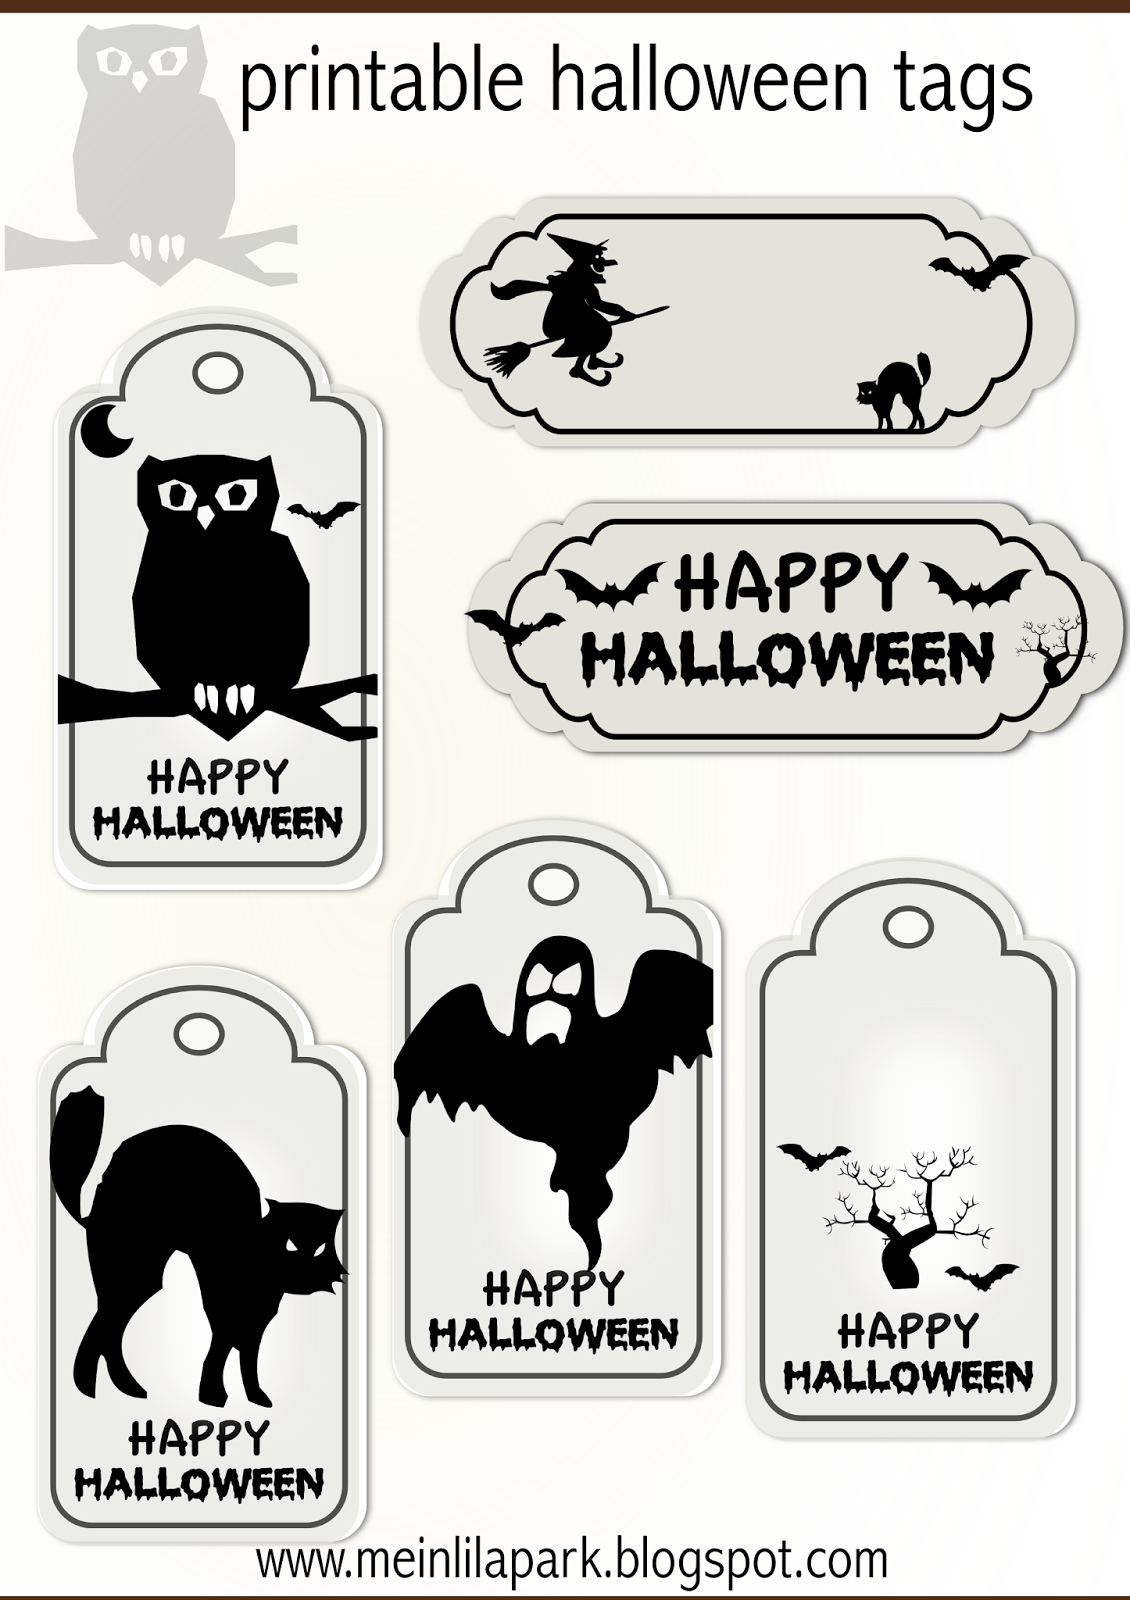 Free Printable Halloween Tags - Druckvorlage Halloween - Freebie - Free Printable Goodie Bag Tags